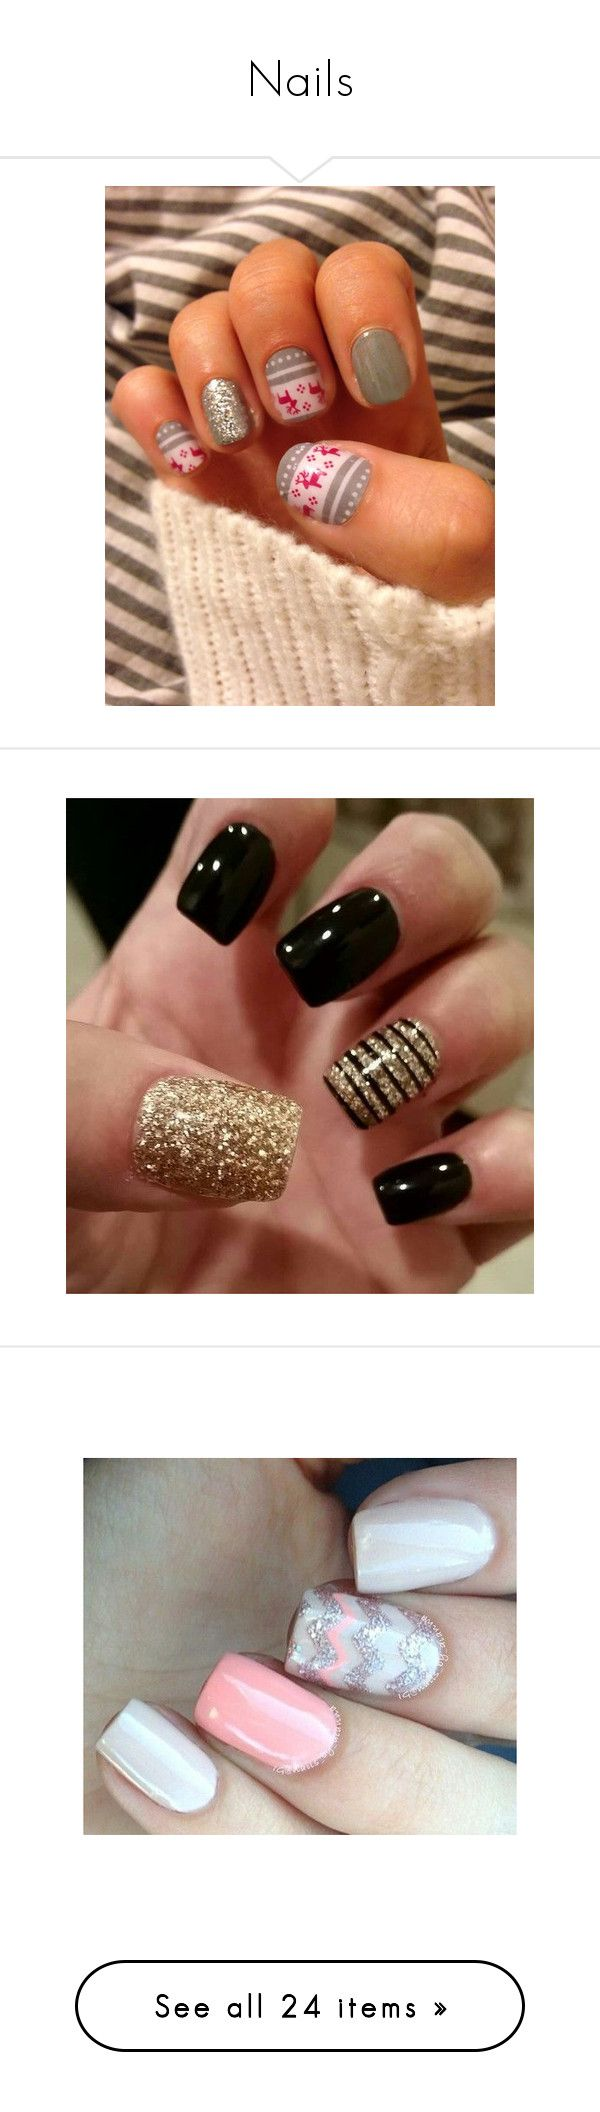 how to take off shellac manicure at home